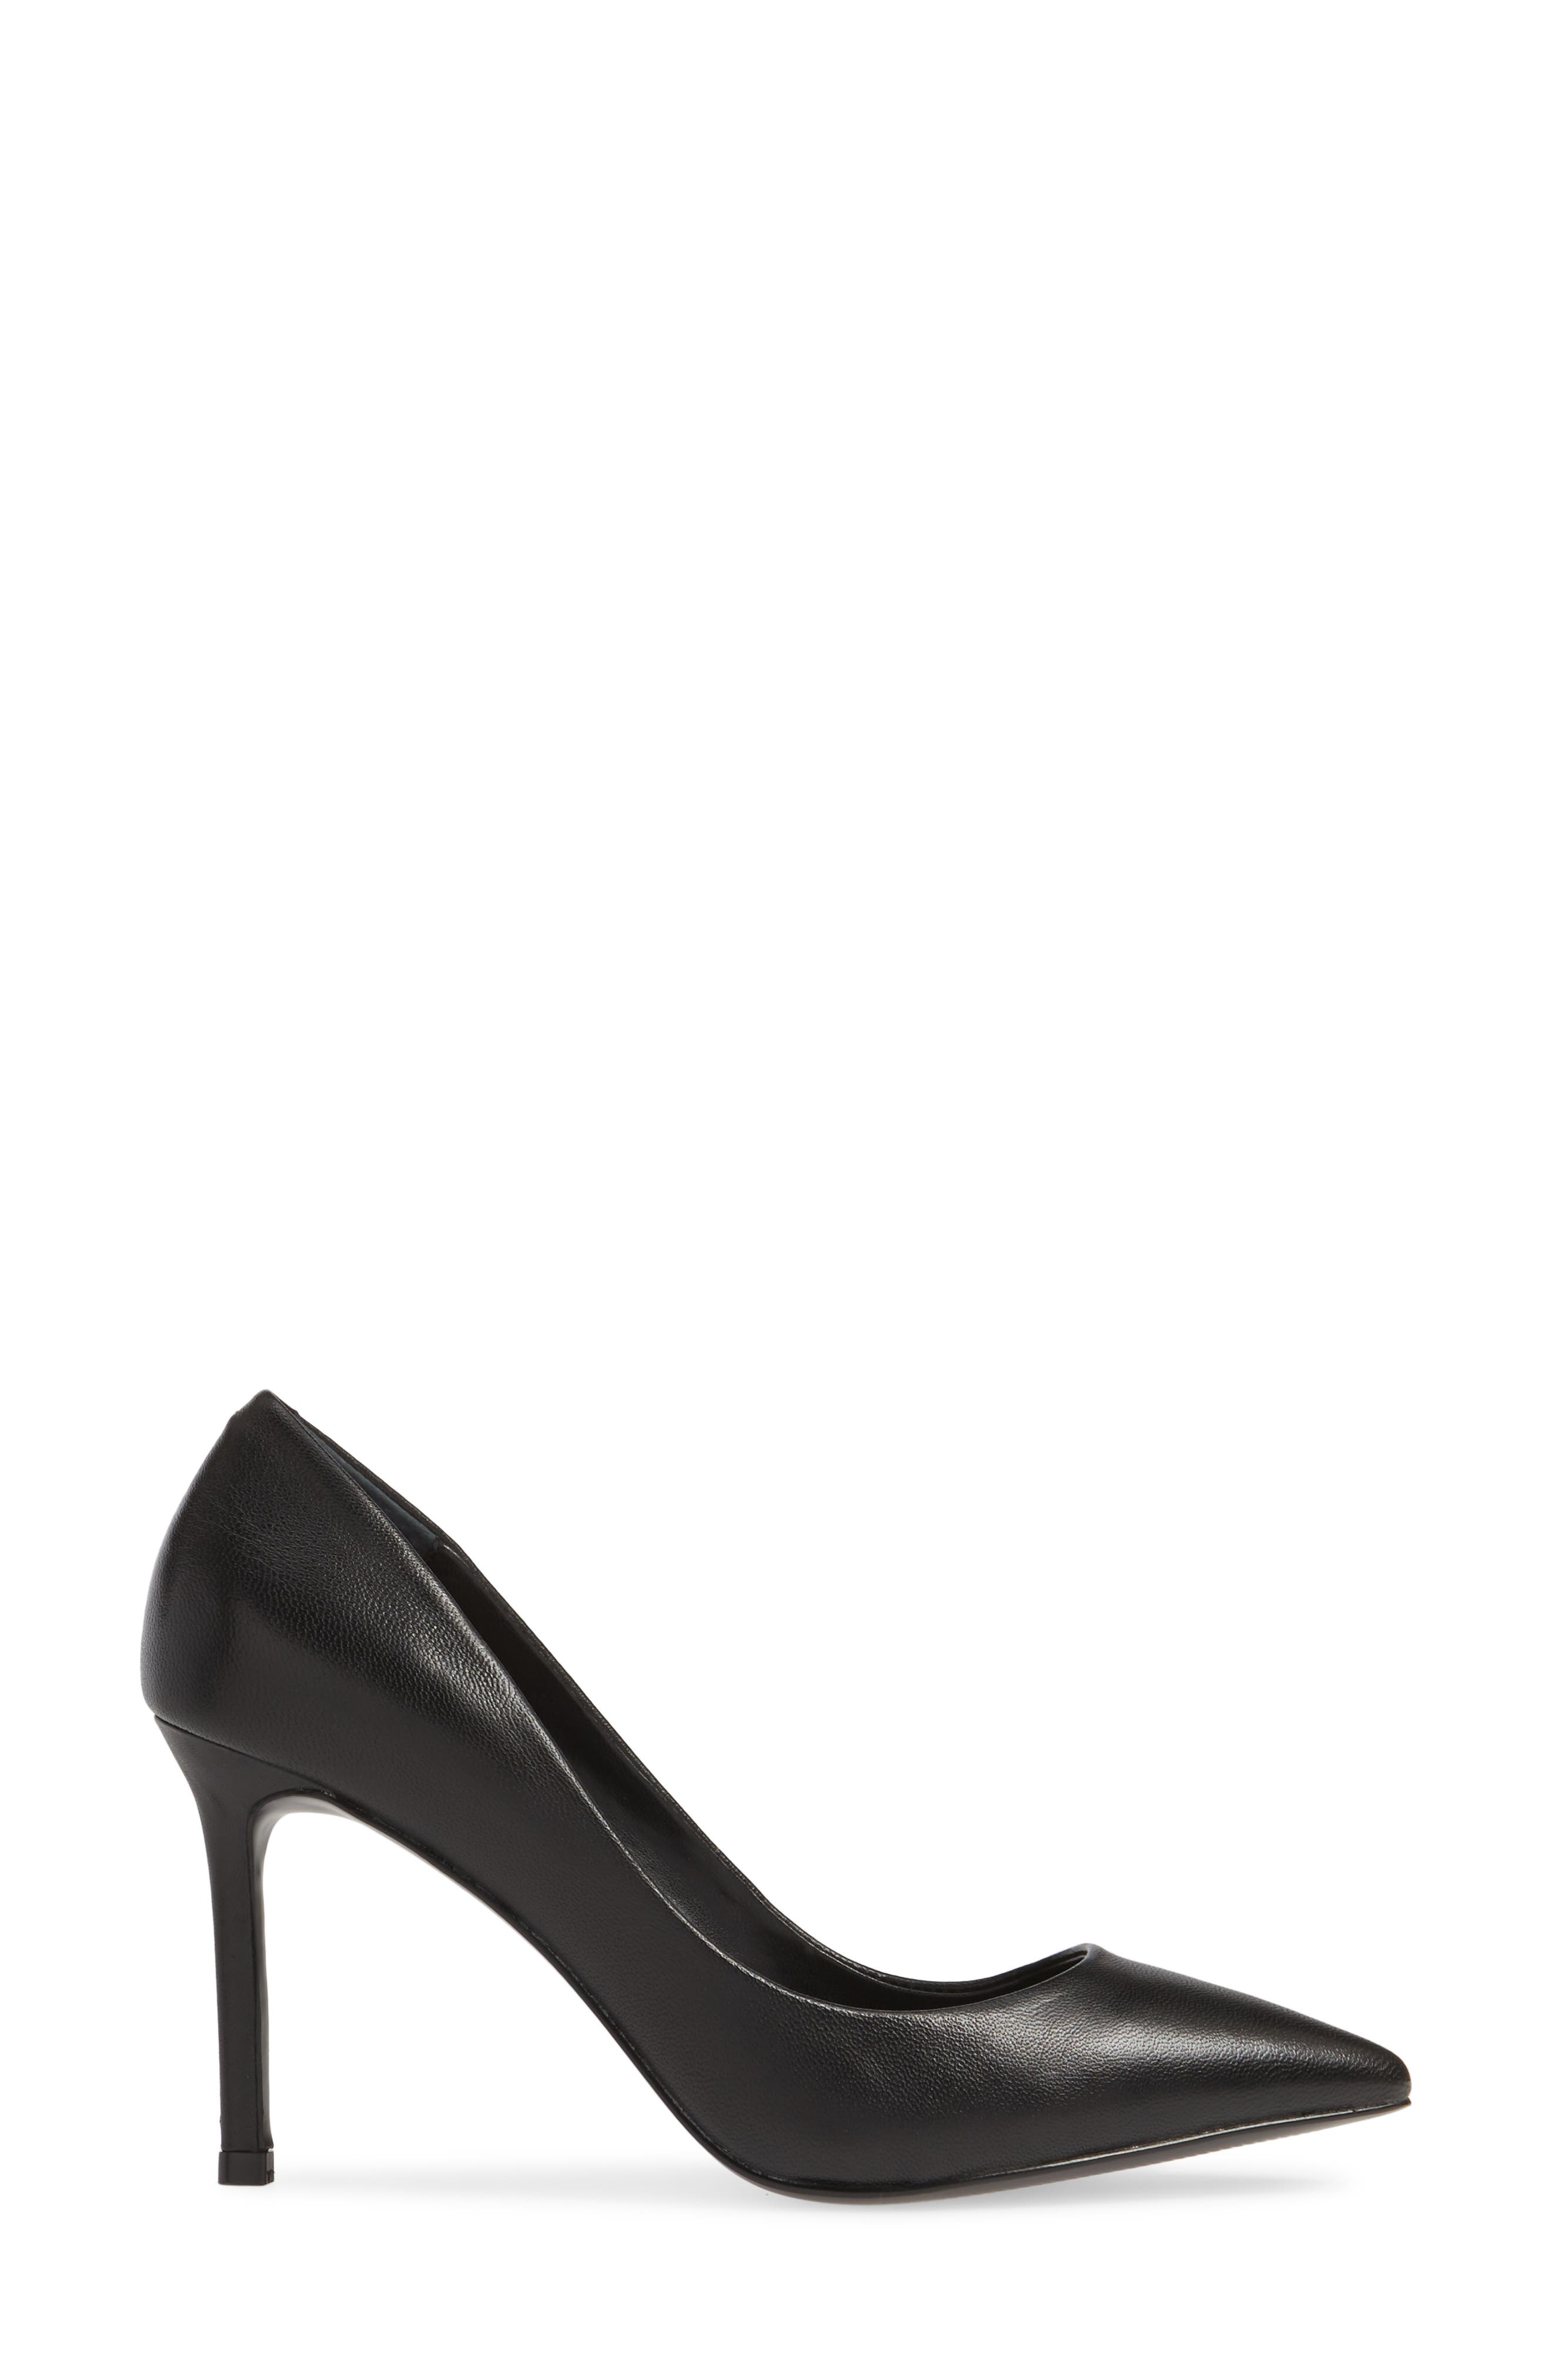 CHARLES BY CHARLES DAVID,                             Vicky Pump,                             Alternate thumbnail 3, color,                             BLACK LEATHER